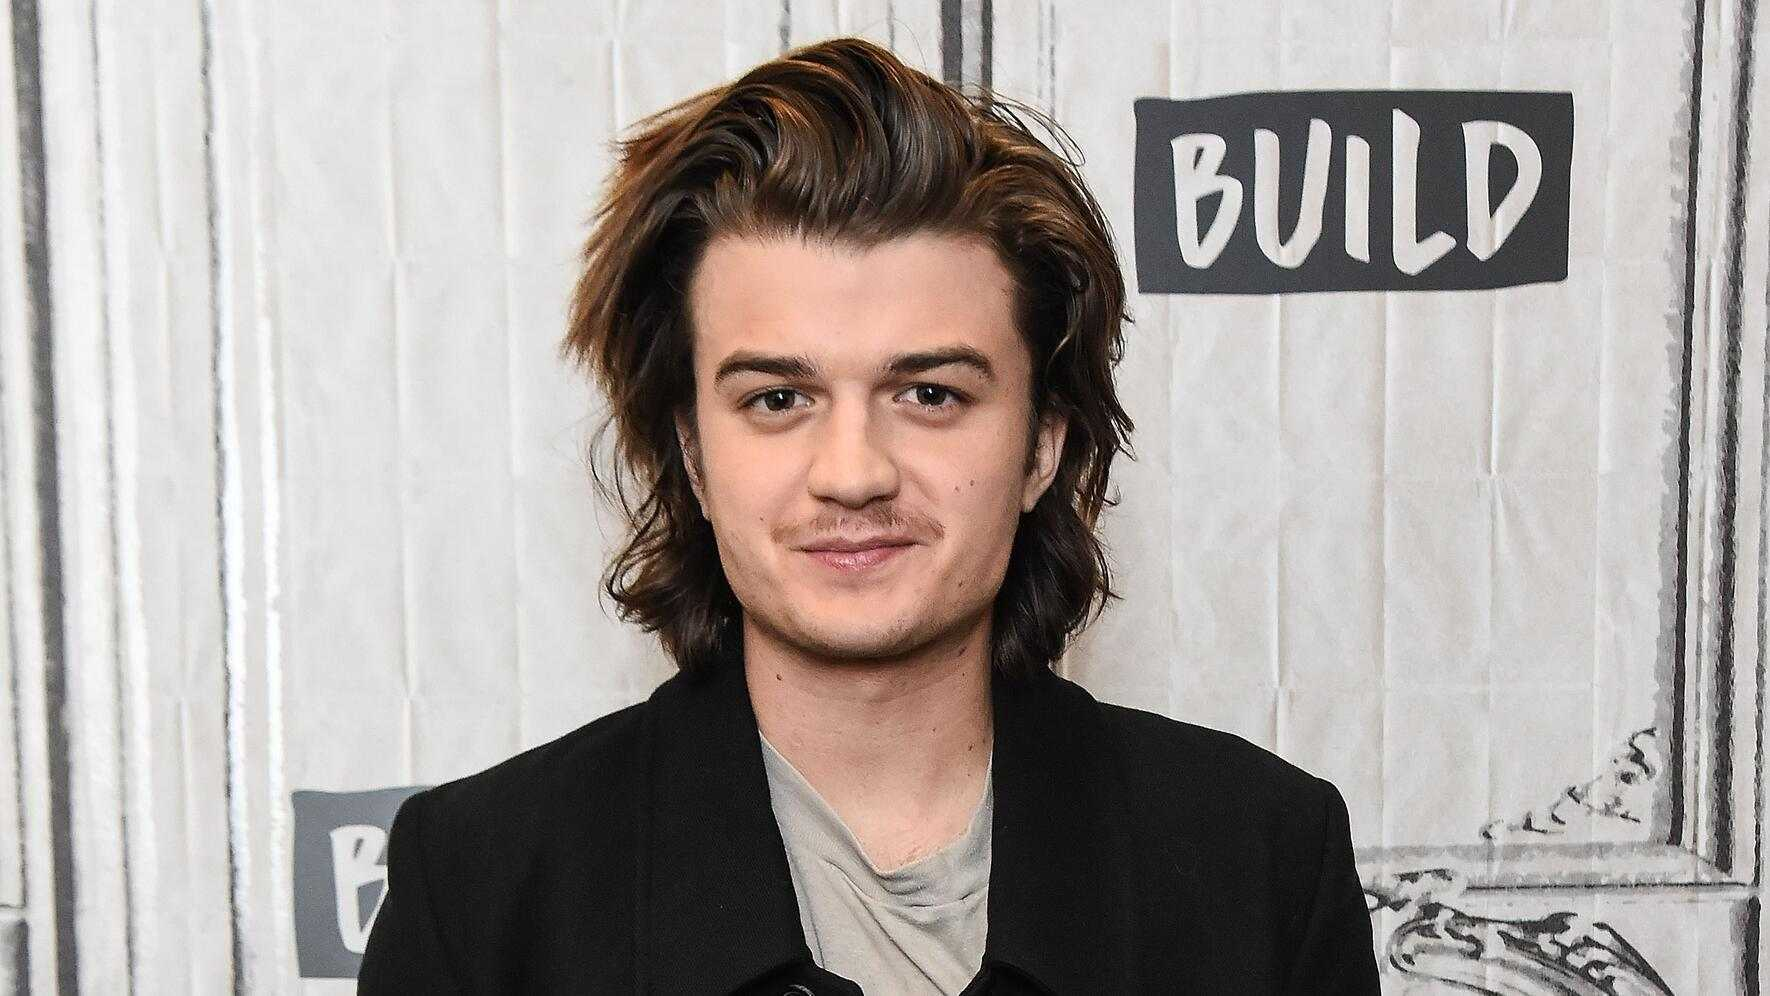 NEW YORK, NY - NOVEMBER 29:  Actor Joe Keery attends the Build Series to discuss the Netflix show 'Stranger Things 2' at Build Studio on November 29, 2017 in New York City.  (Photo by Daniel Zuchnik/WireImage)